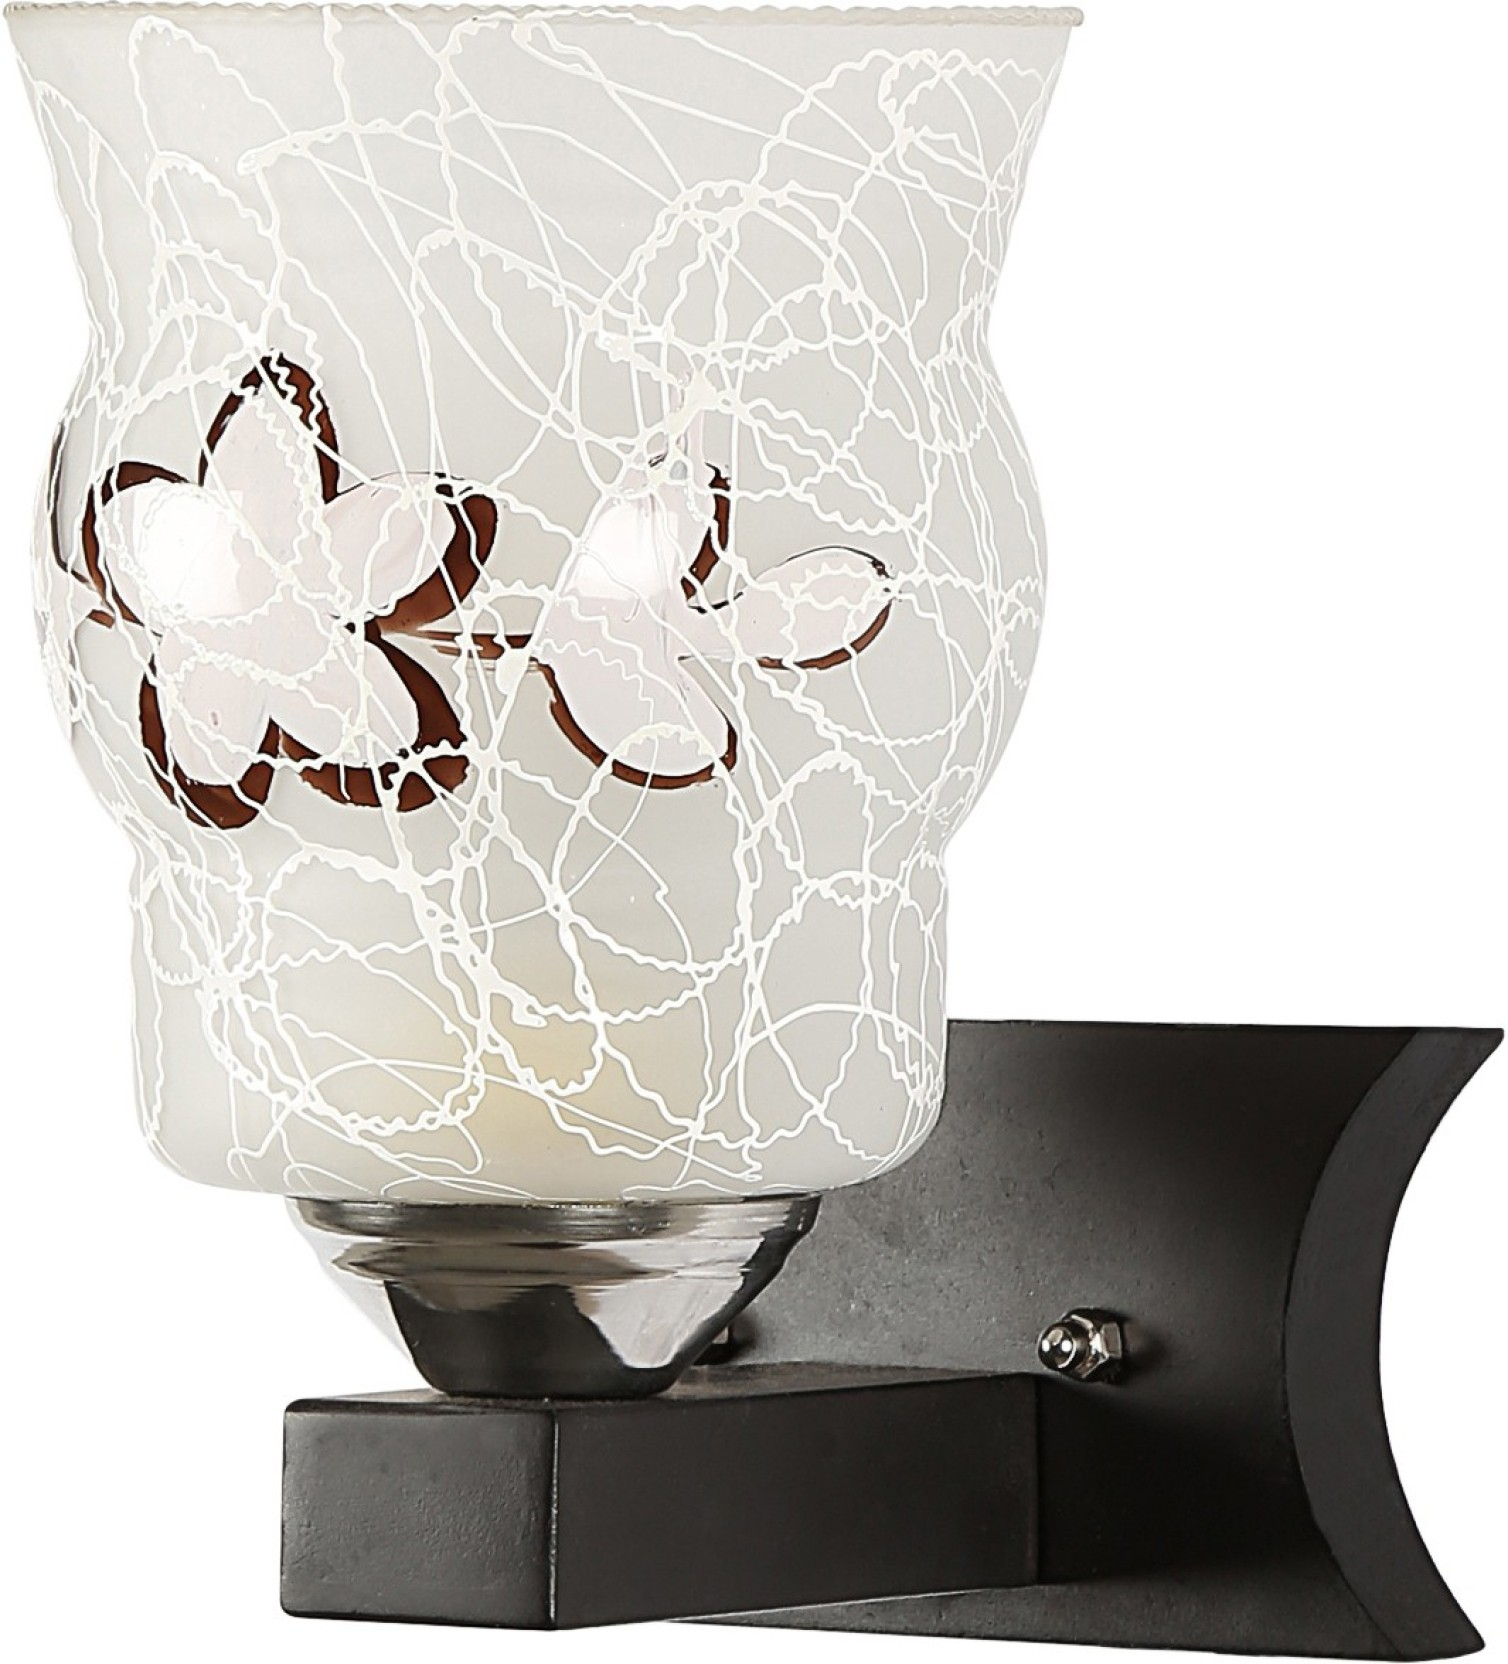 Gojeeva Sconce Wall Lamp Price in India - Buy Gojeeva Sconce Wall Lamp online at Flipkart.com